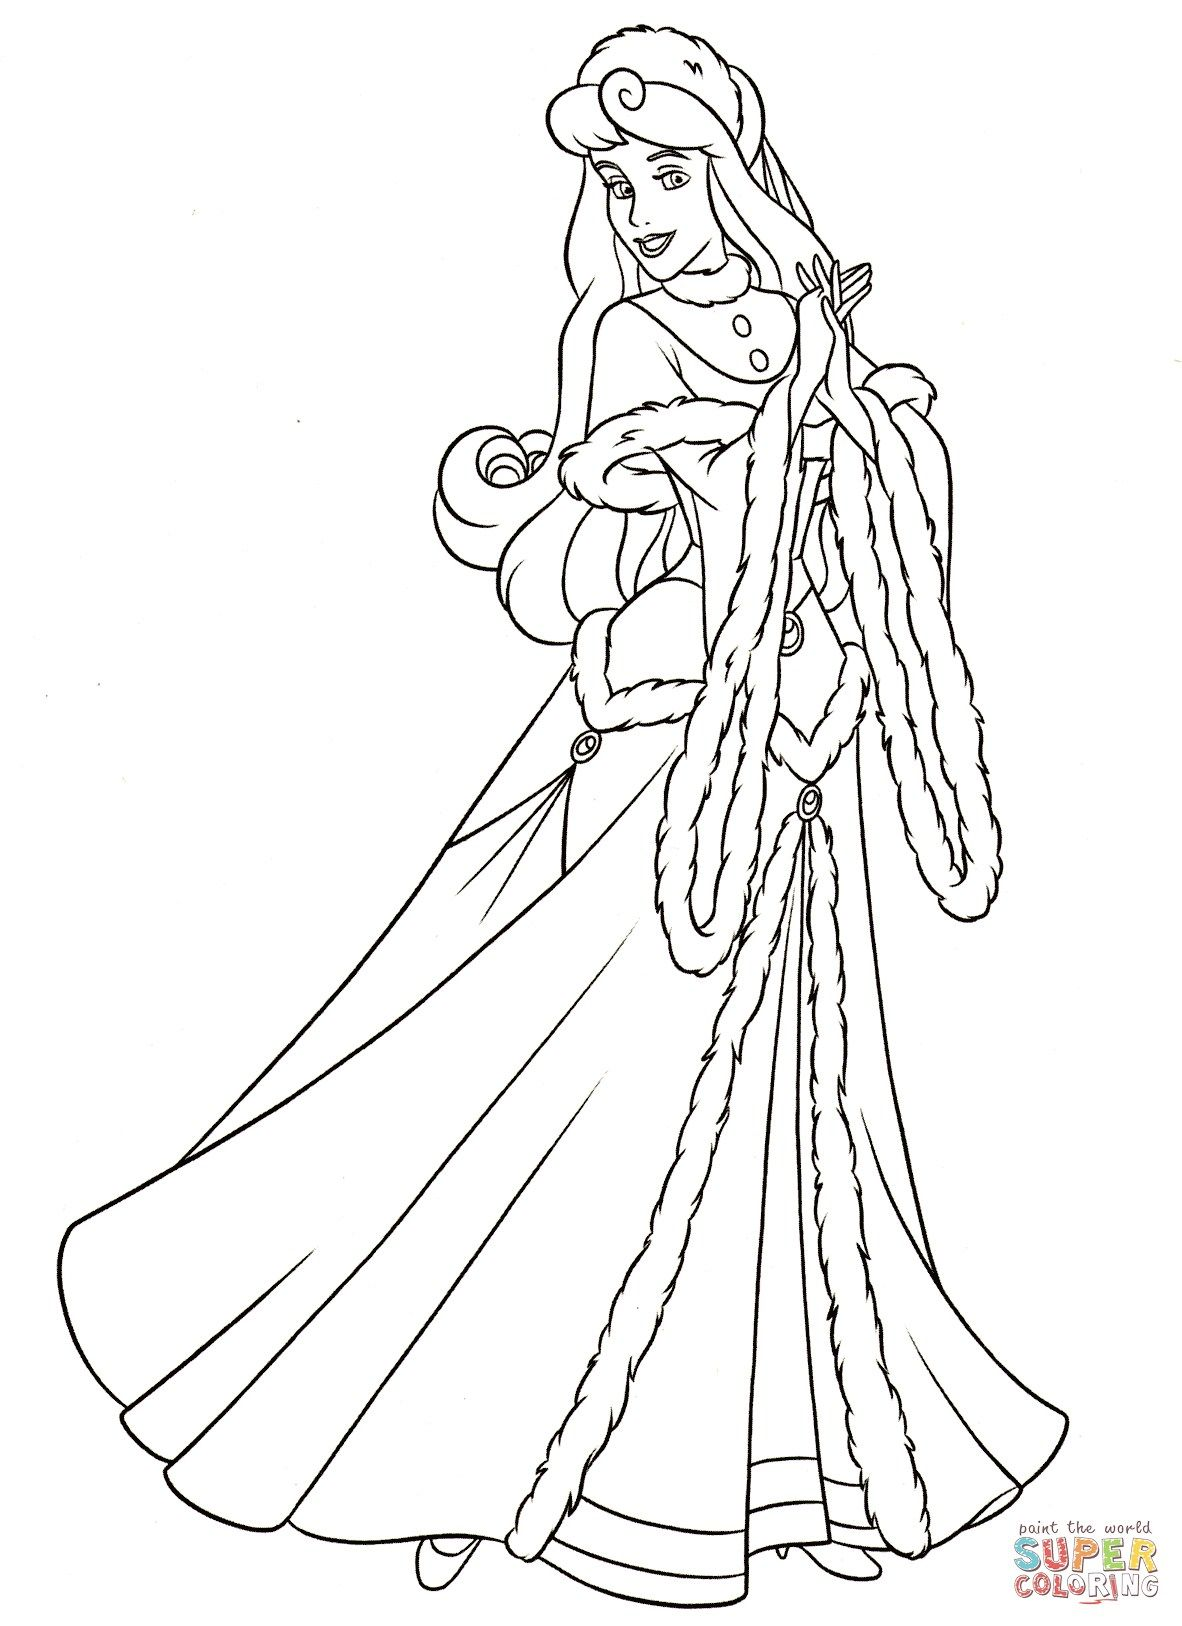 24+ Amazing Image of Aurora Coloring Pages Sleeping